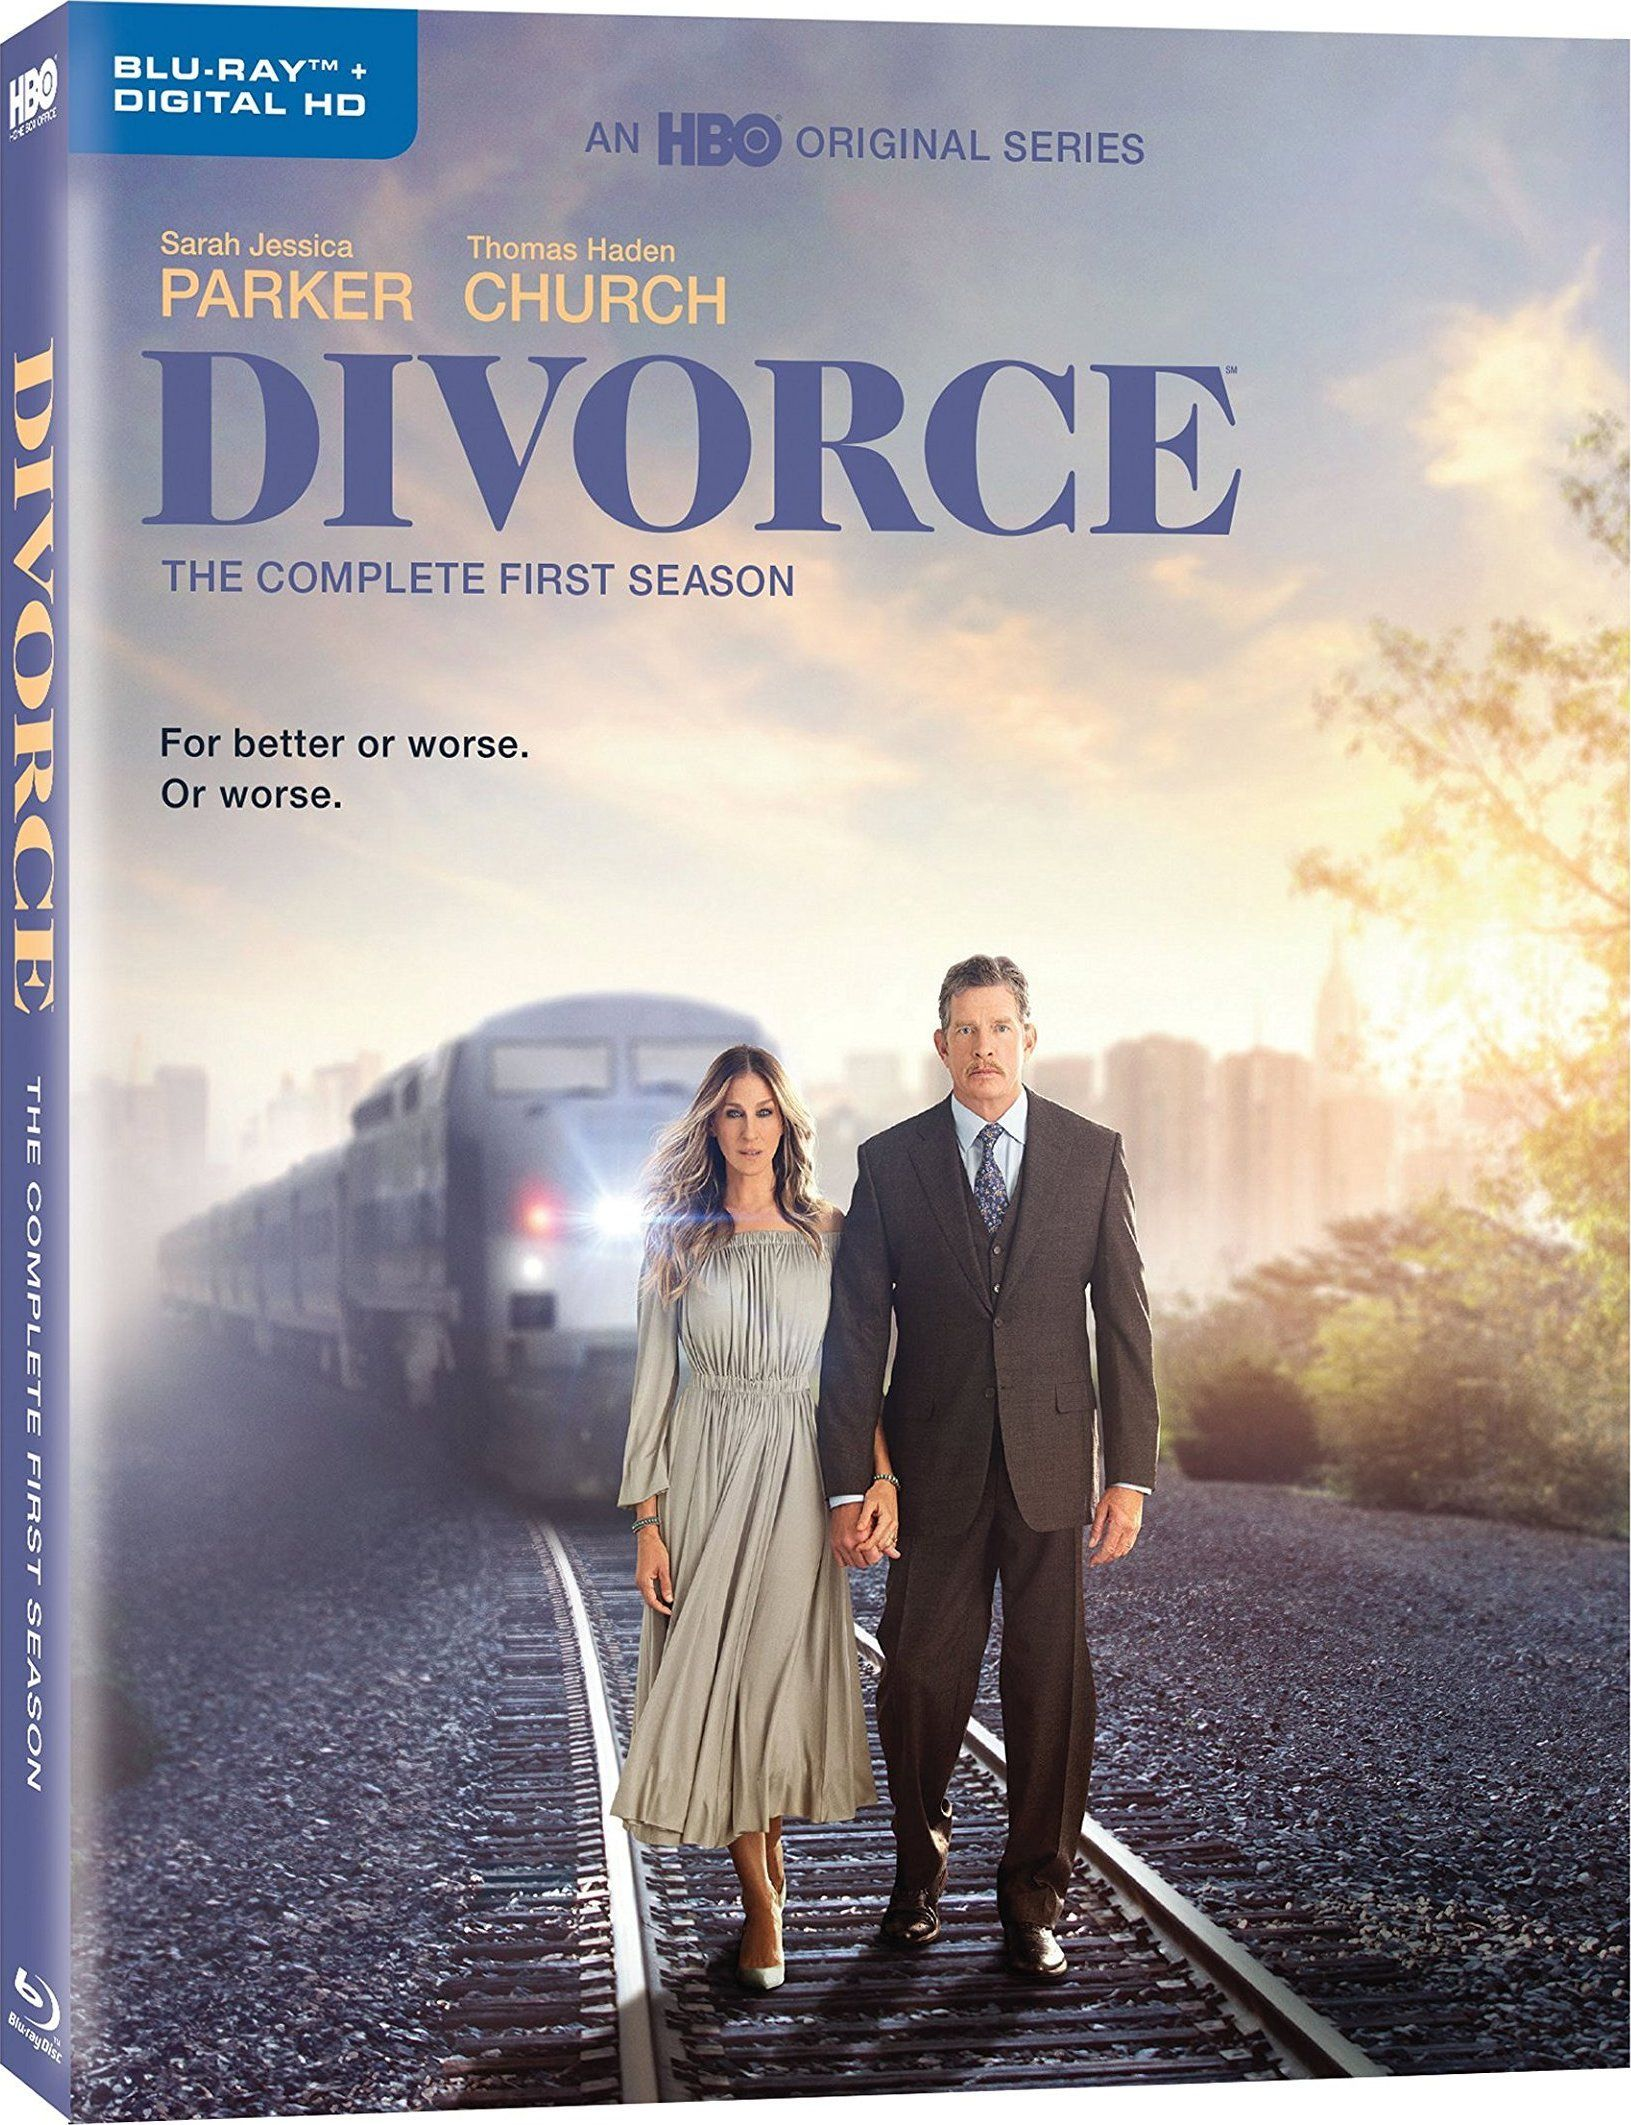 Divorce The Complete First Season 2016 Blu Ray With Images